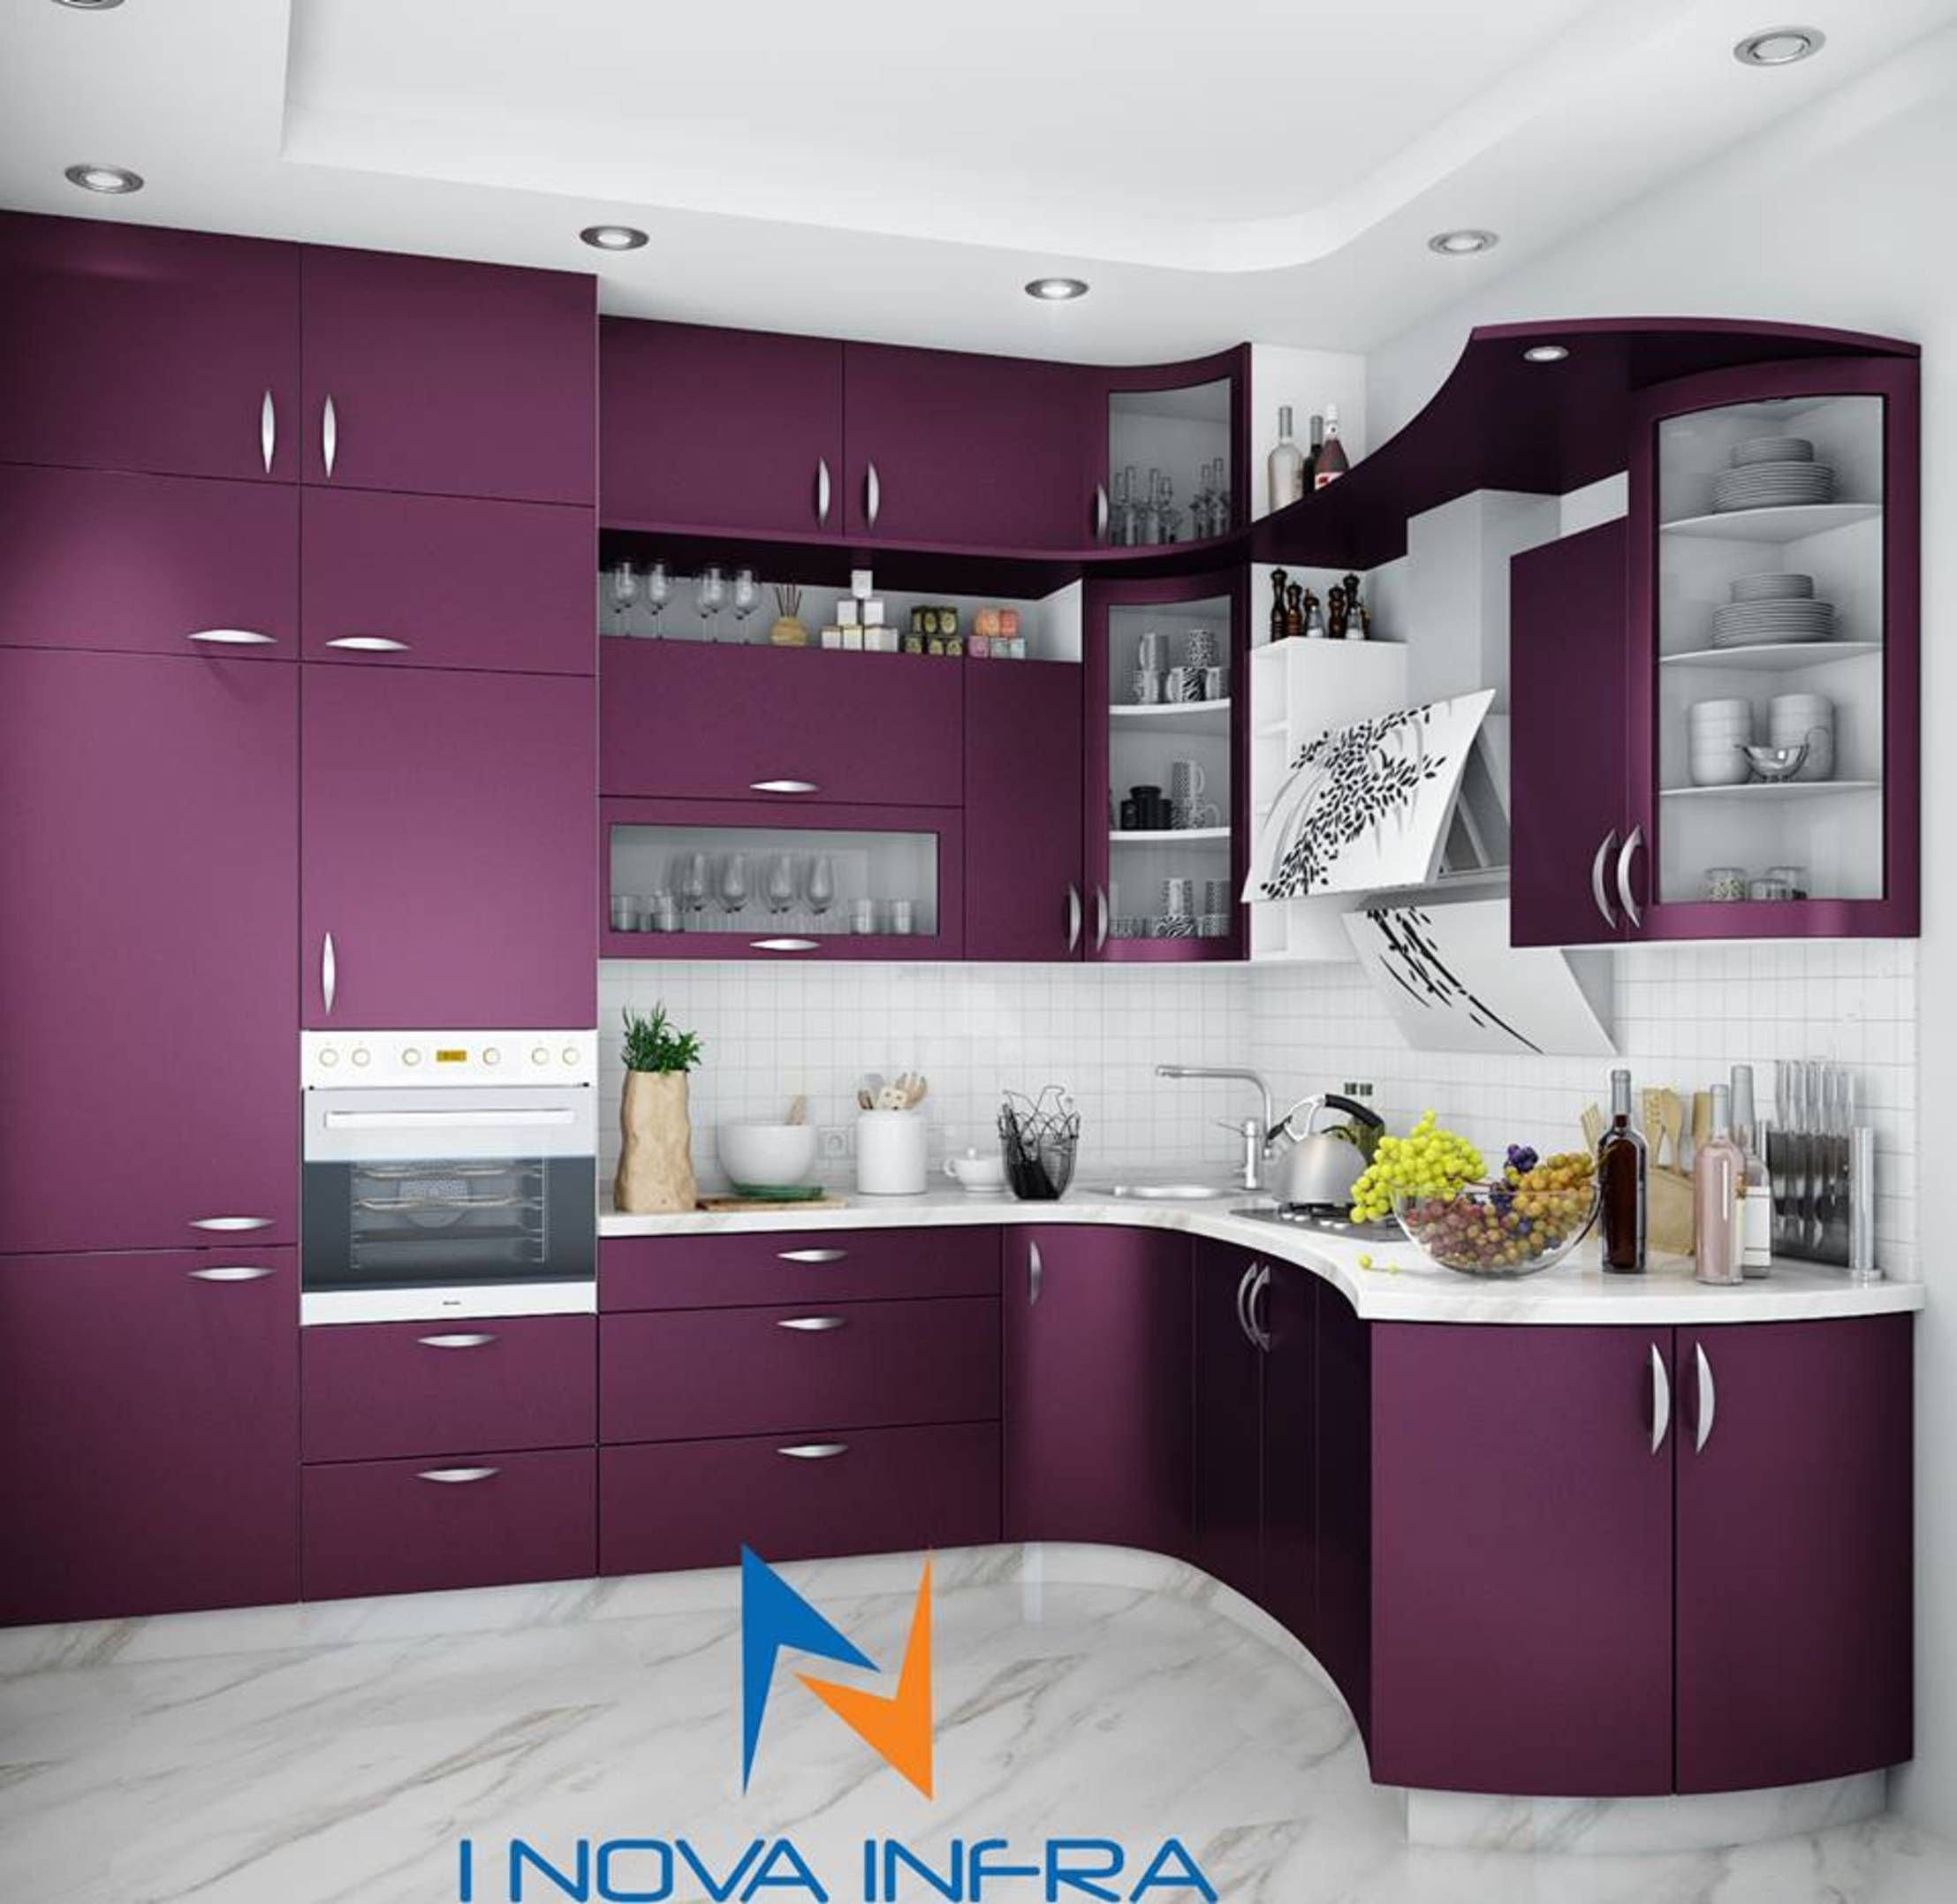 6 Ways To Store More In Your Small Indian Kitchen Homify Kitchen Cupboard Designs Simple Kitchen Design Kitchen Interior Design Decor